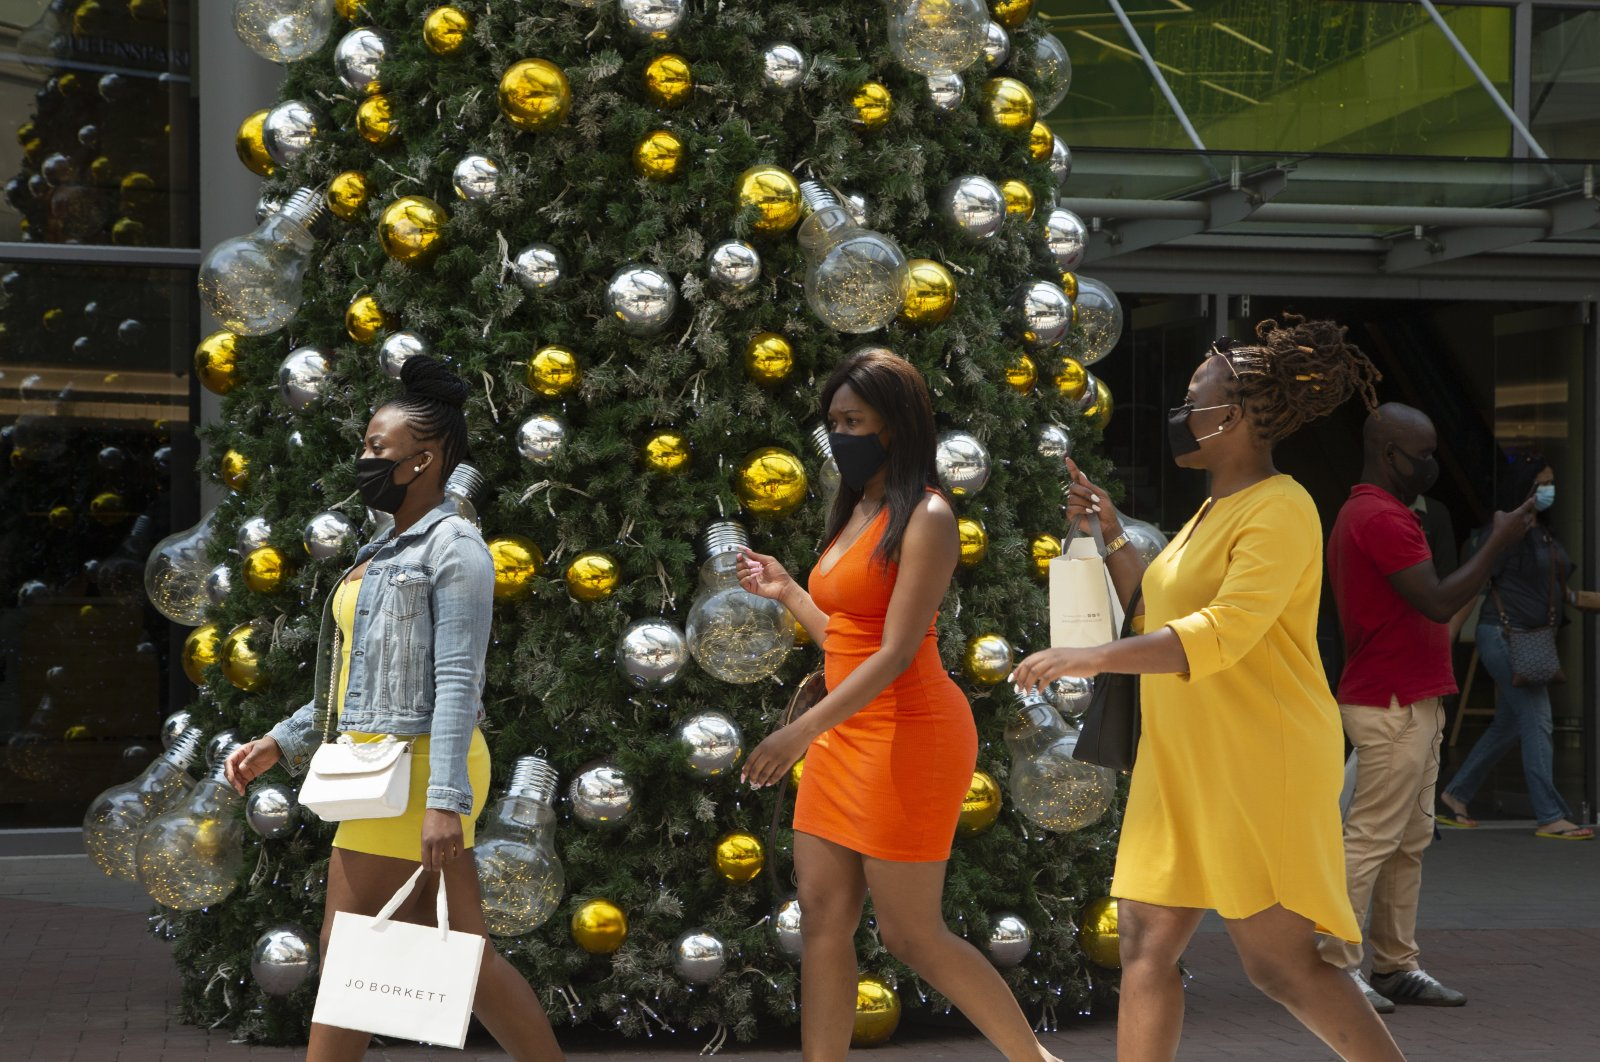 Women wearing face masks as protection against COVID-19 pass a Christmas tree at a shopping mall in Johannesburg, South Africa, Dec. 7, 2020. (AP Photo)